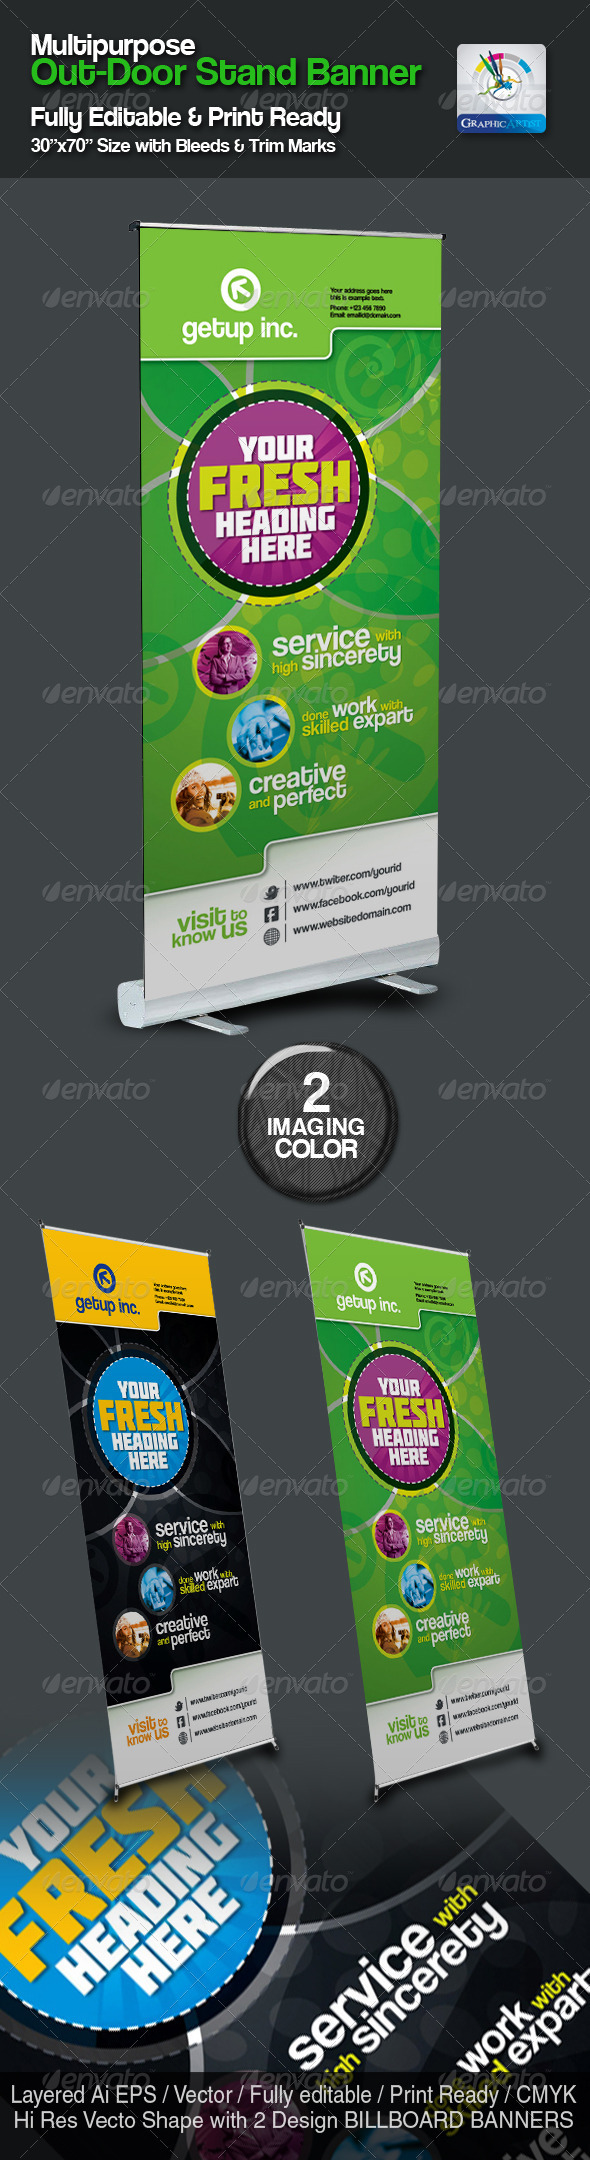 Multipurpose Out-Door Stand Banner Sinage - Signage Print Templates